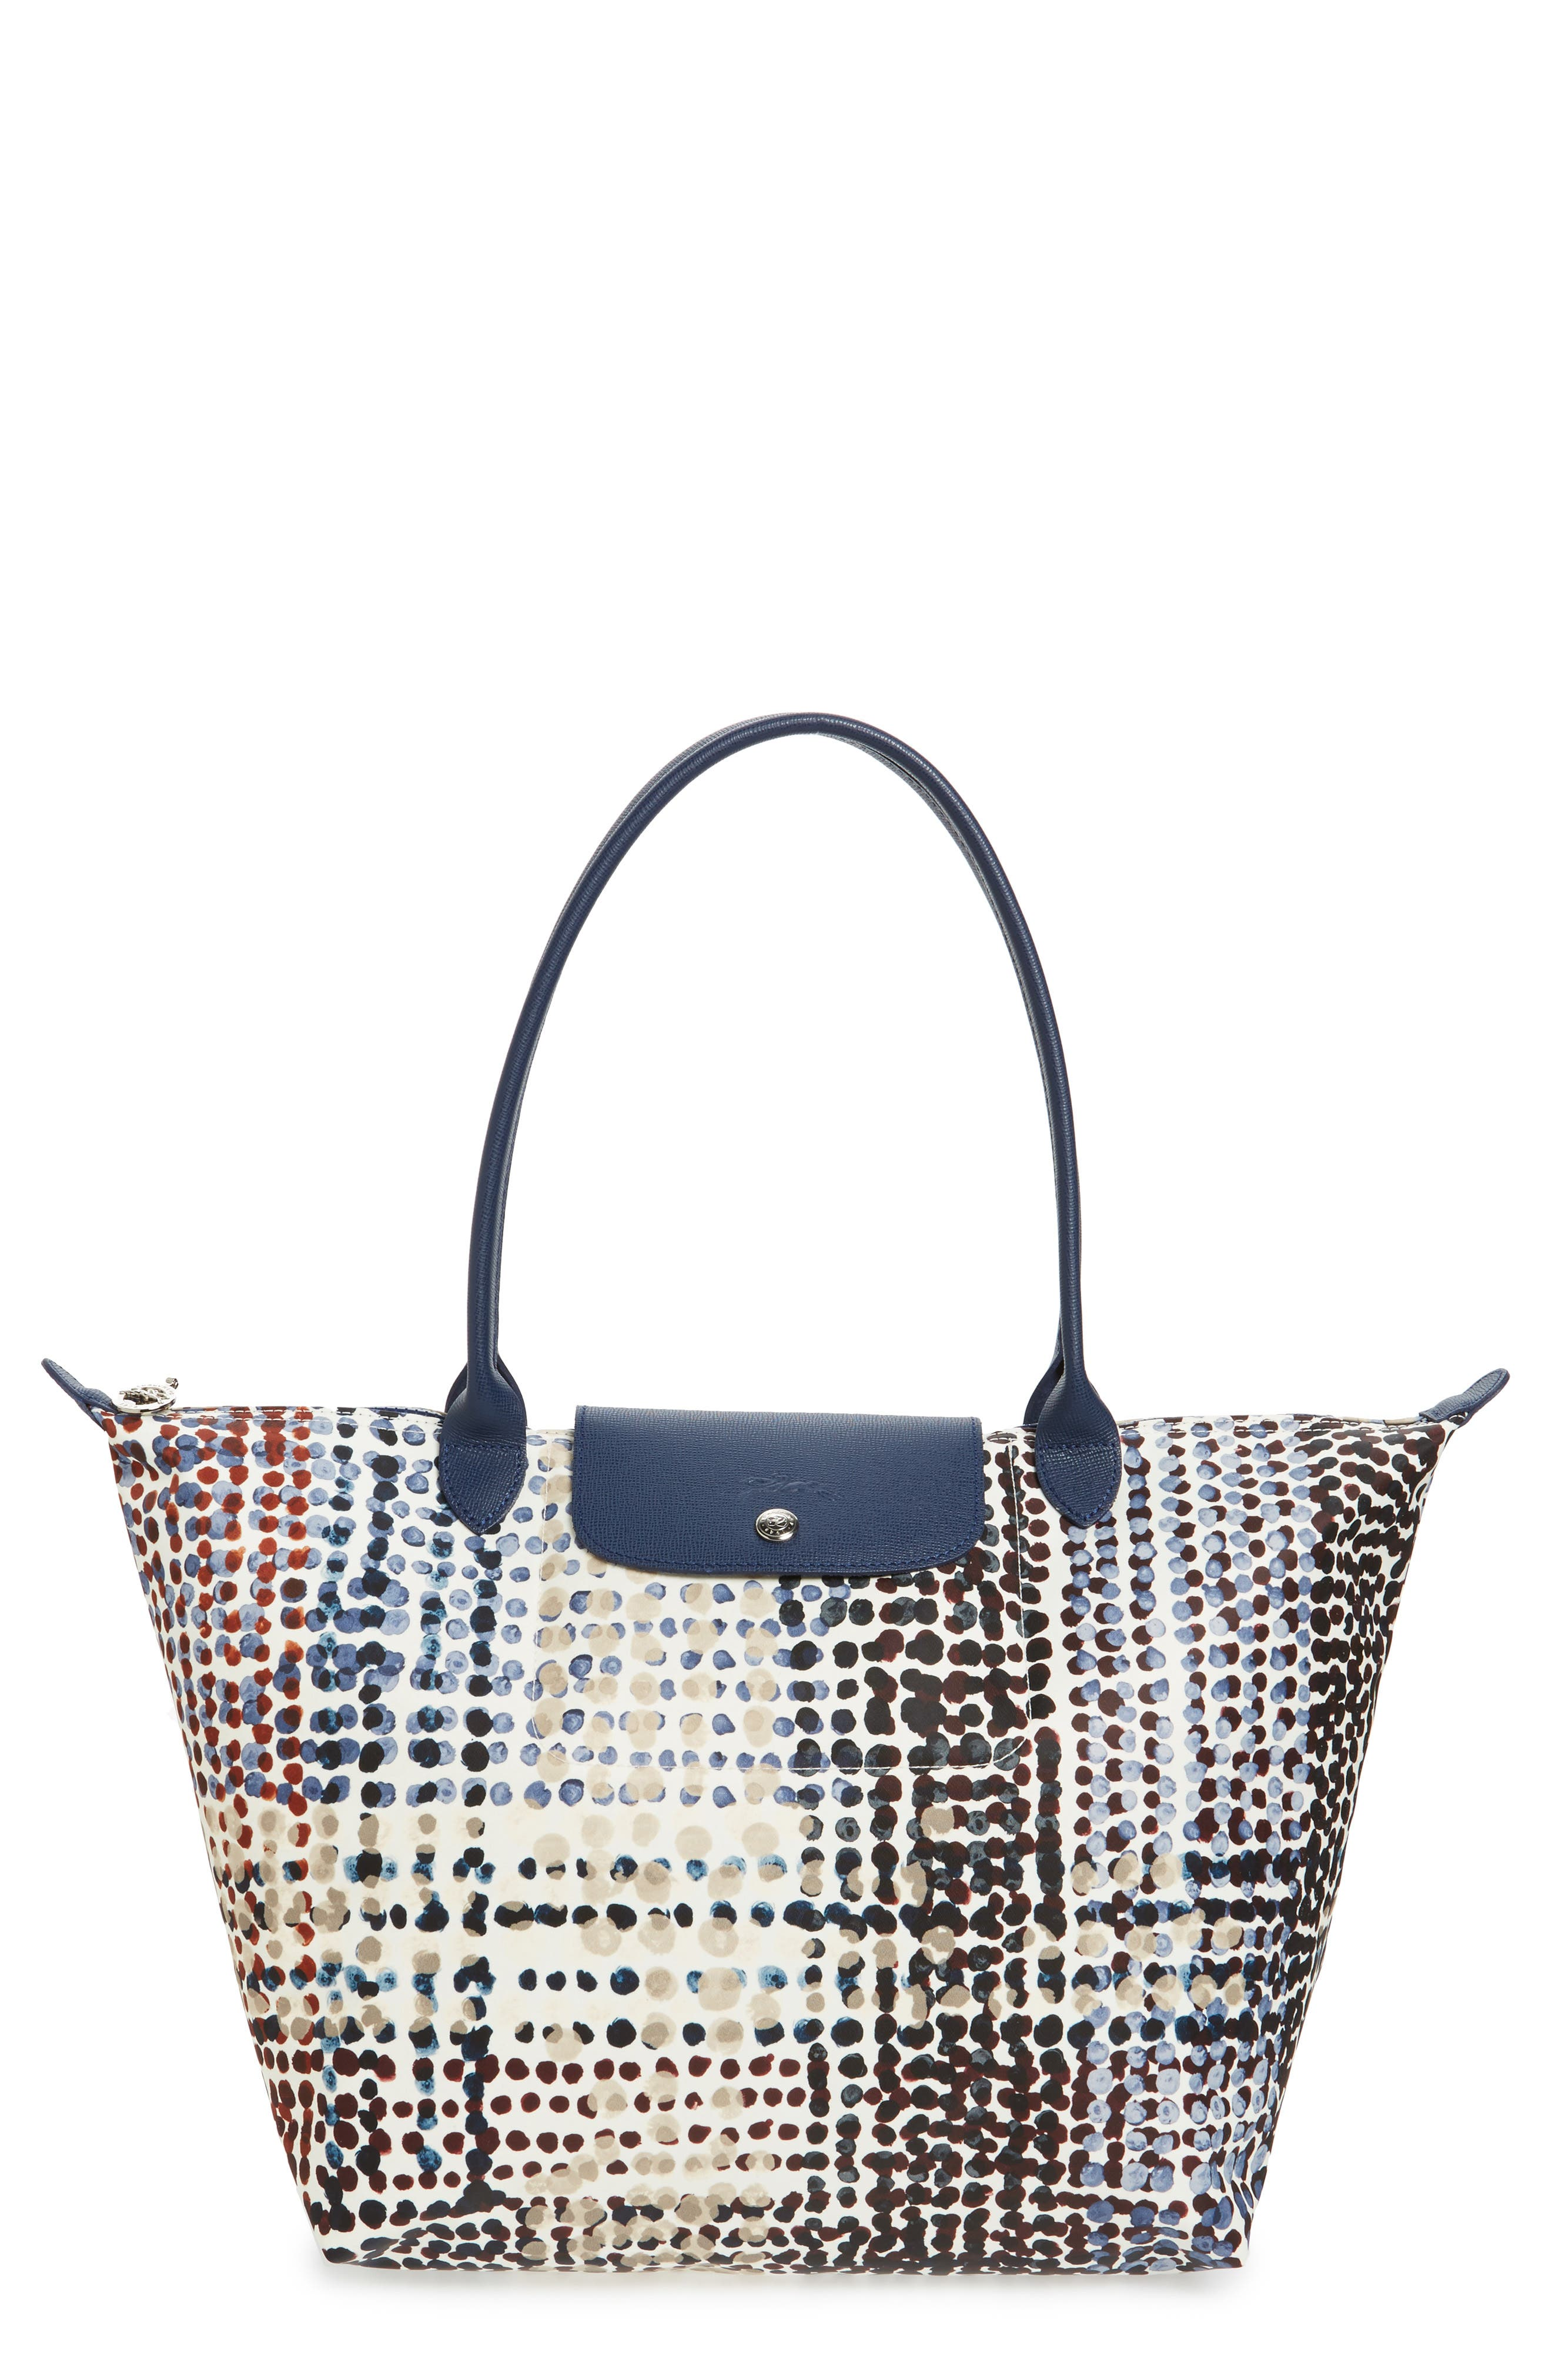 Alternate Image 1 Selected - Longchamp Le Pliage Neo Fantasie Tote